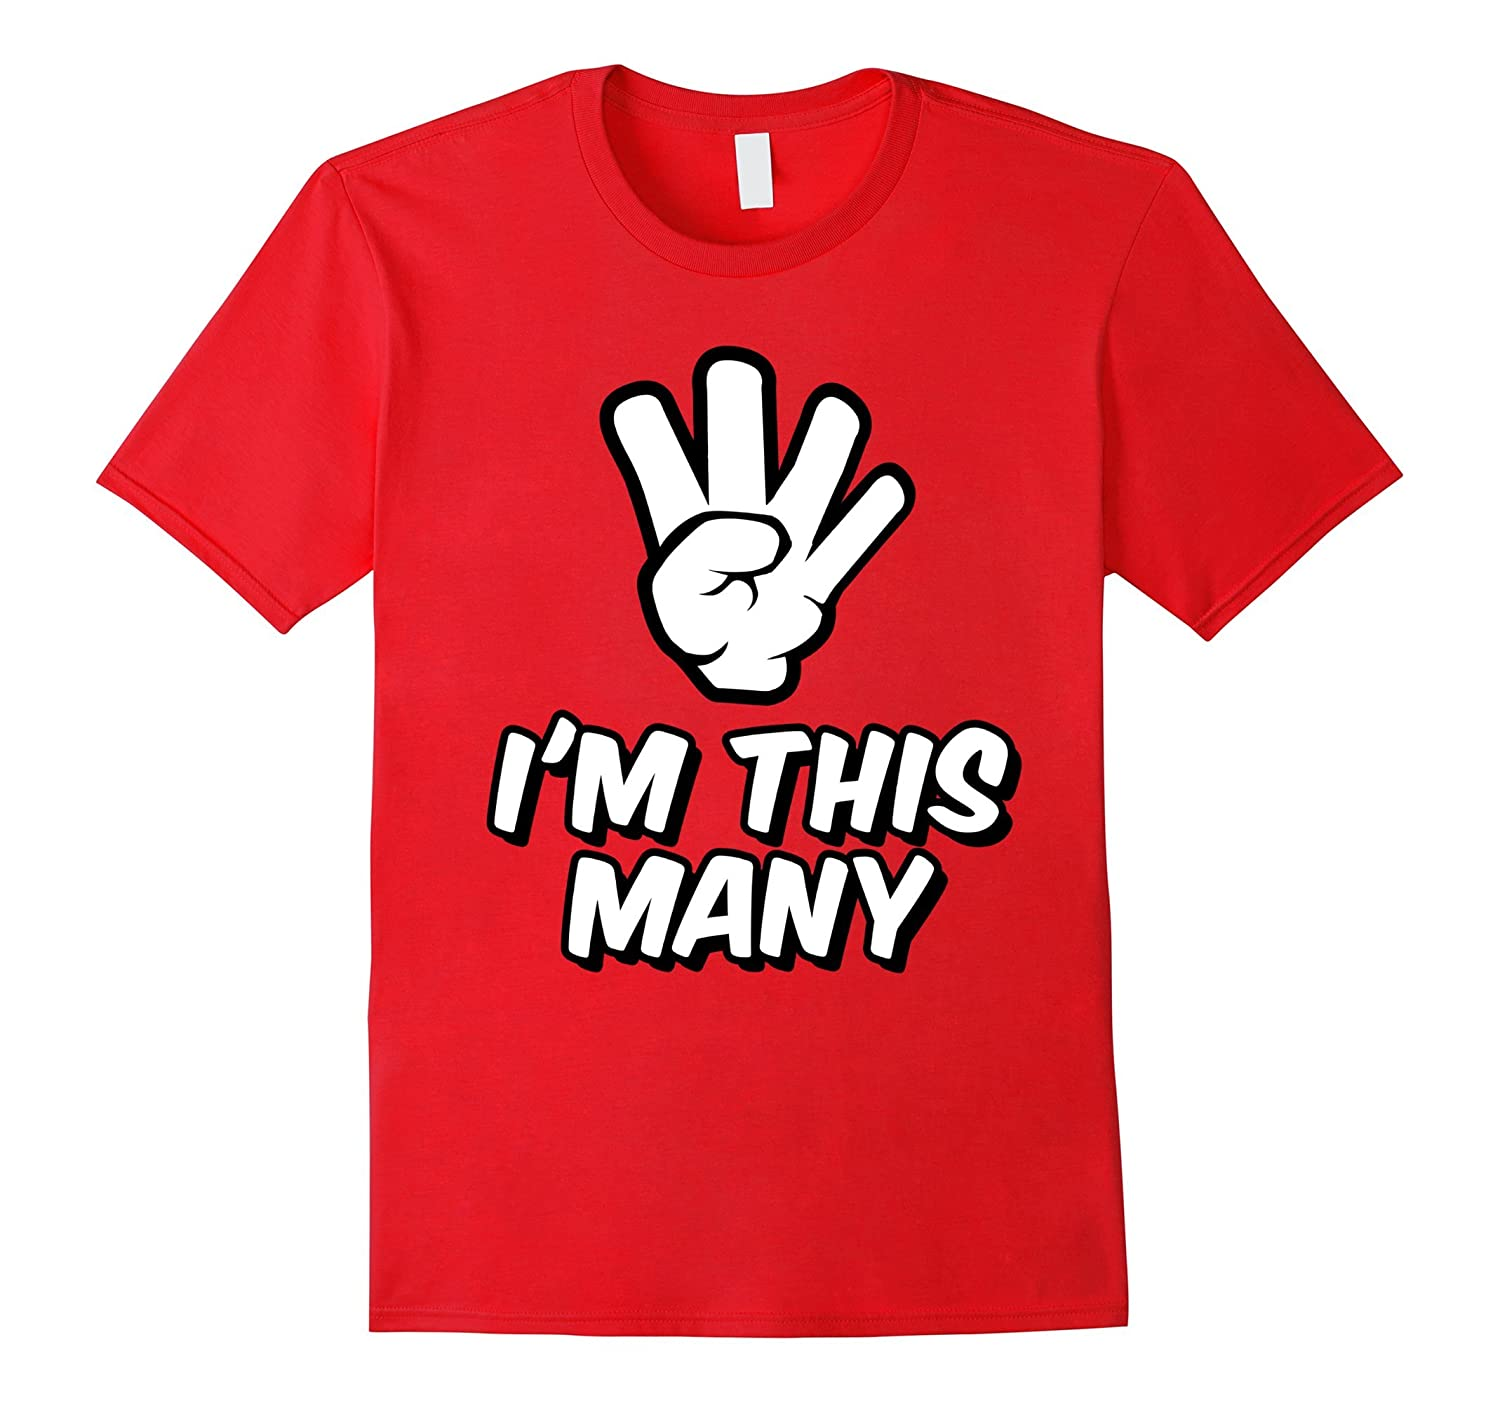 4 Year Old Birthday Tshirt - Funny I'm This Many Kids TShirt-FL